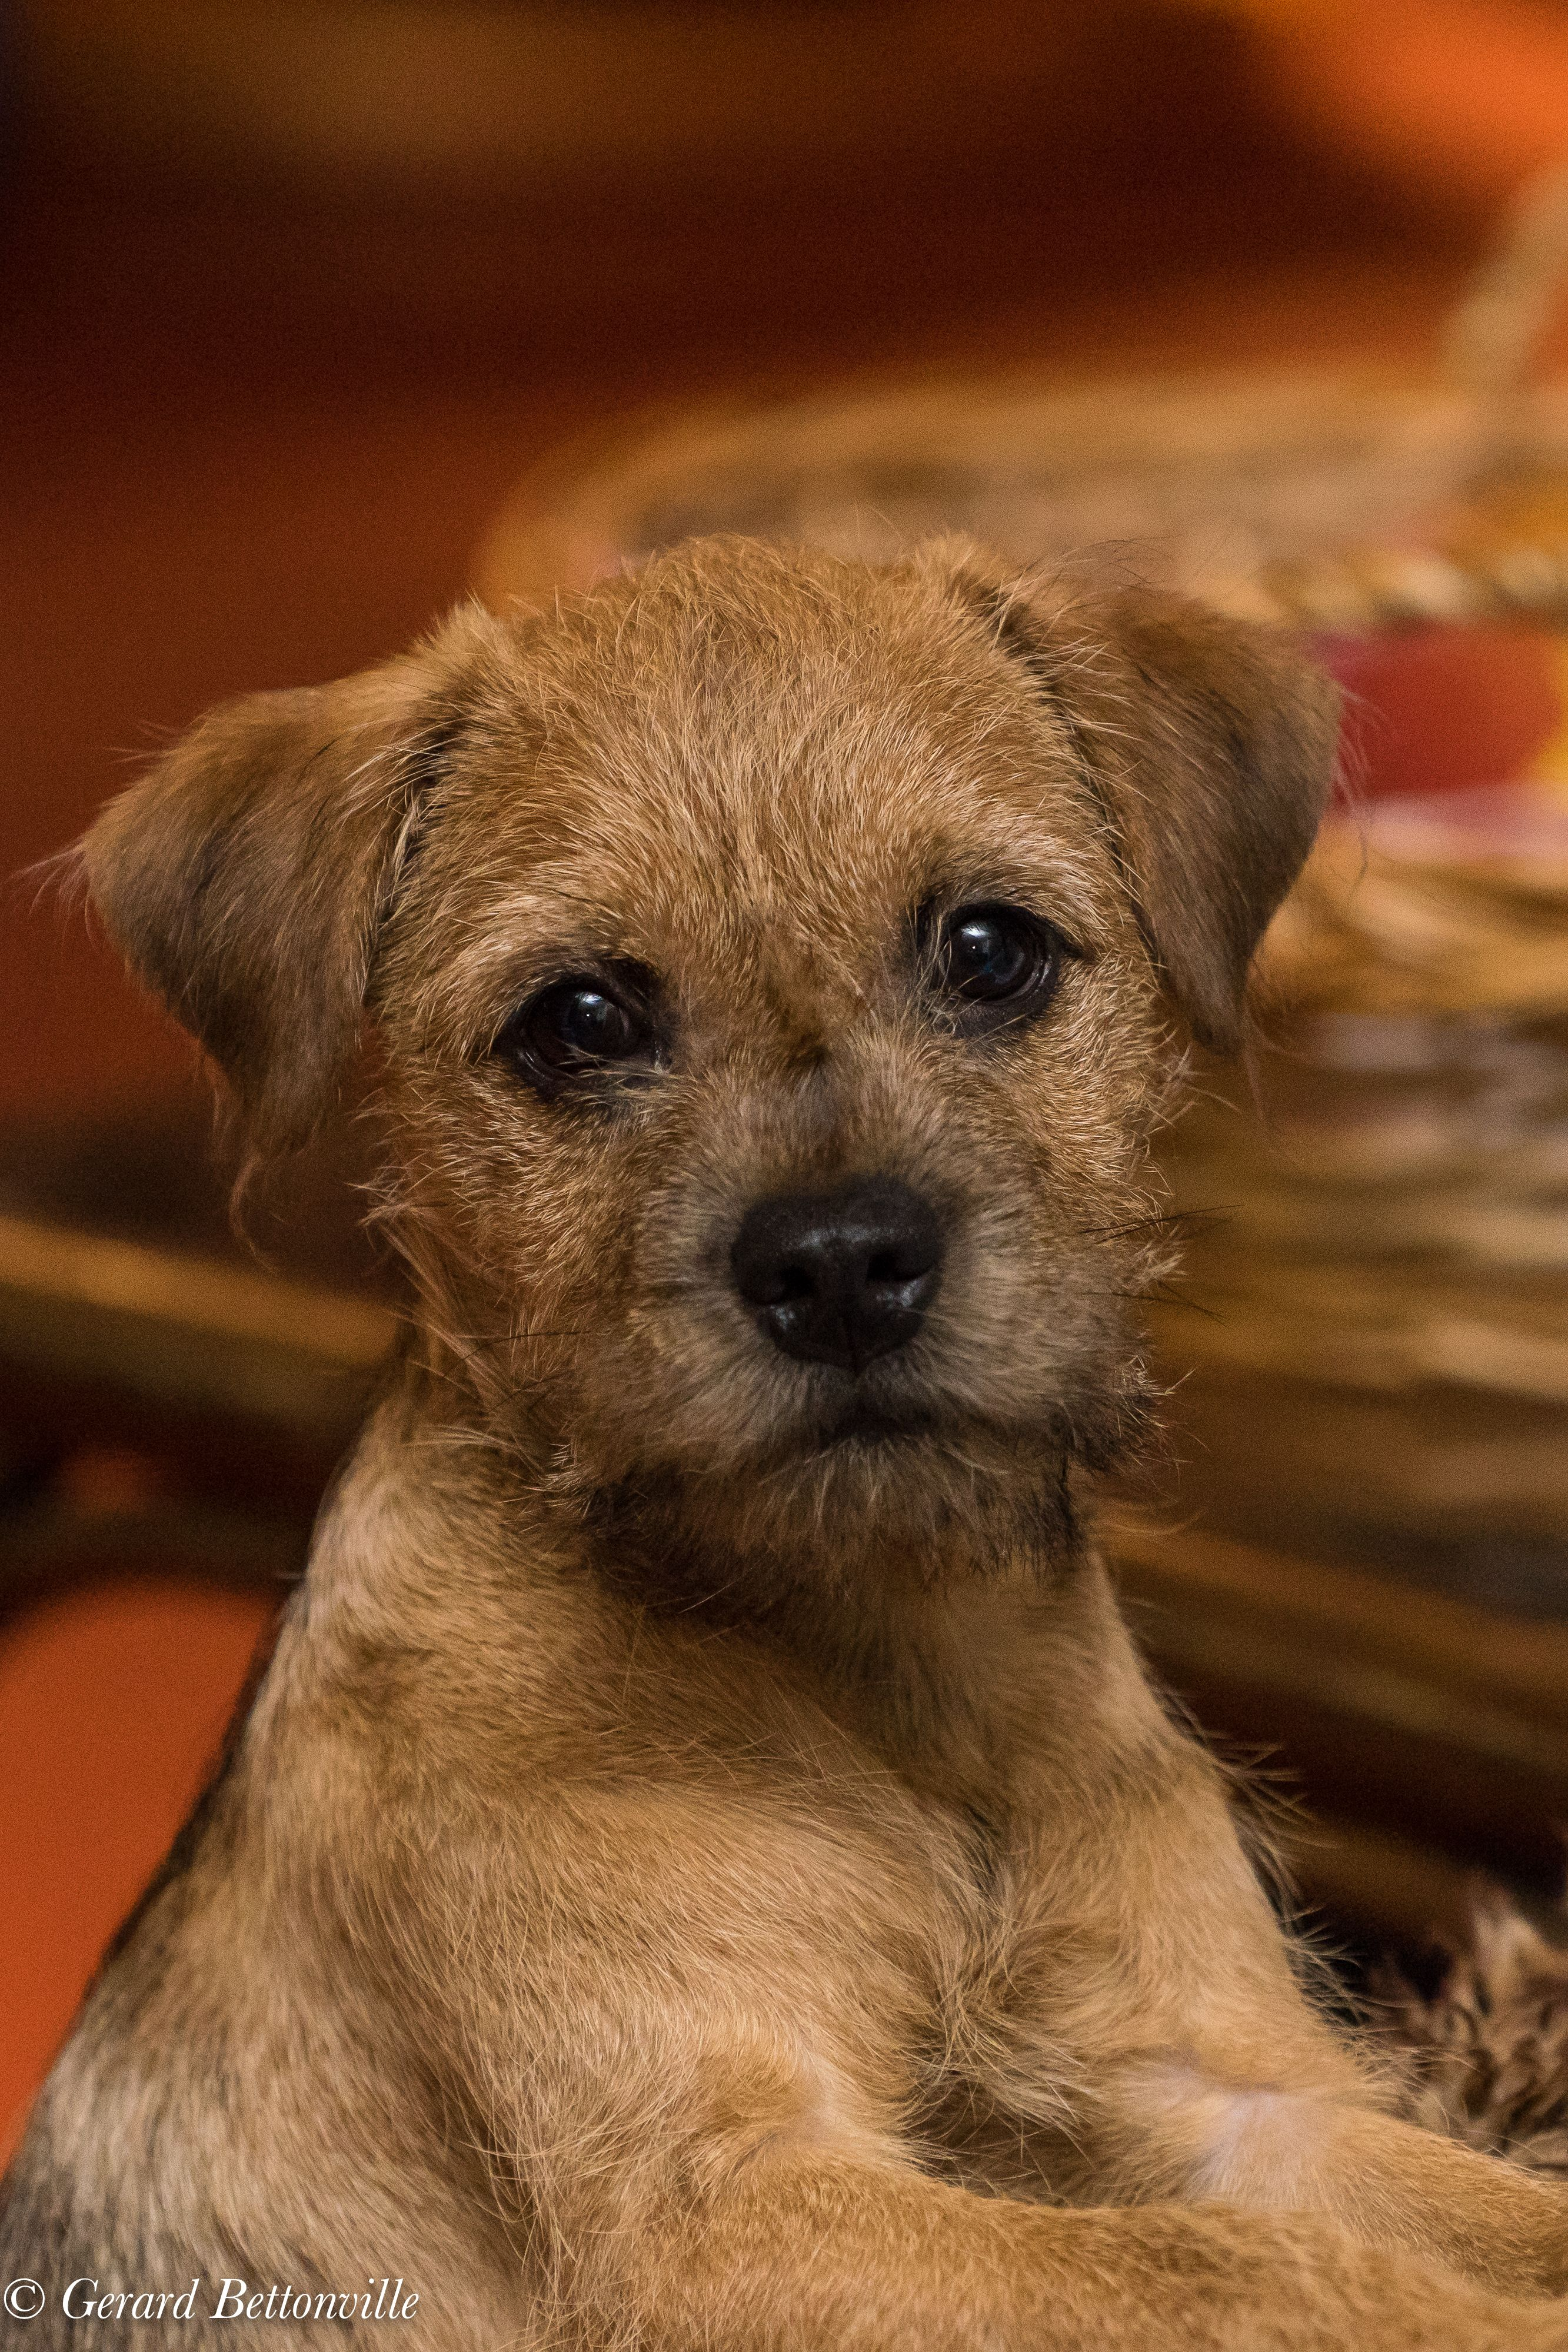 Pin By Cynthia George On Border Terriers In 2020 Border Terrier Puppy Yorkshire Terrier Puppies Patterdale Terrier